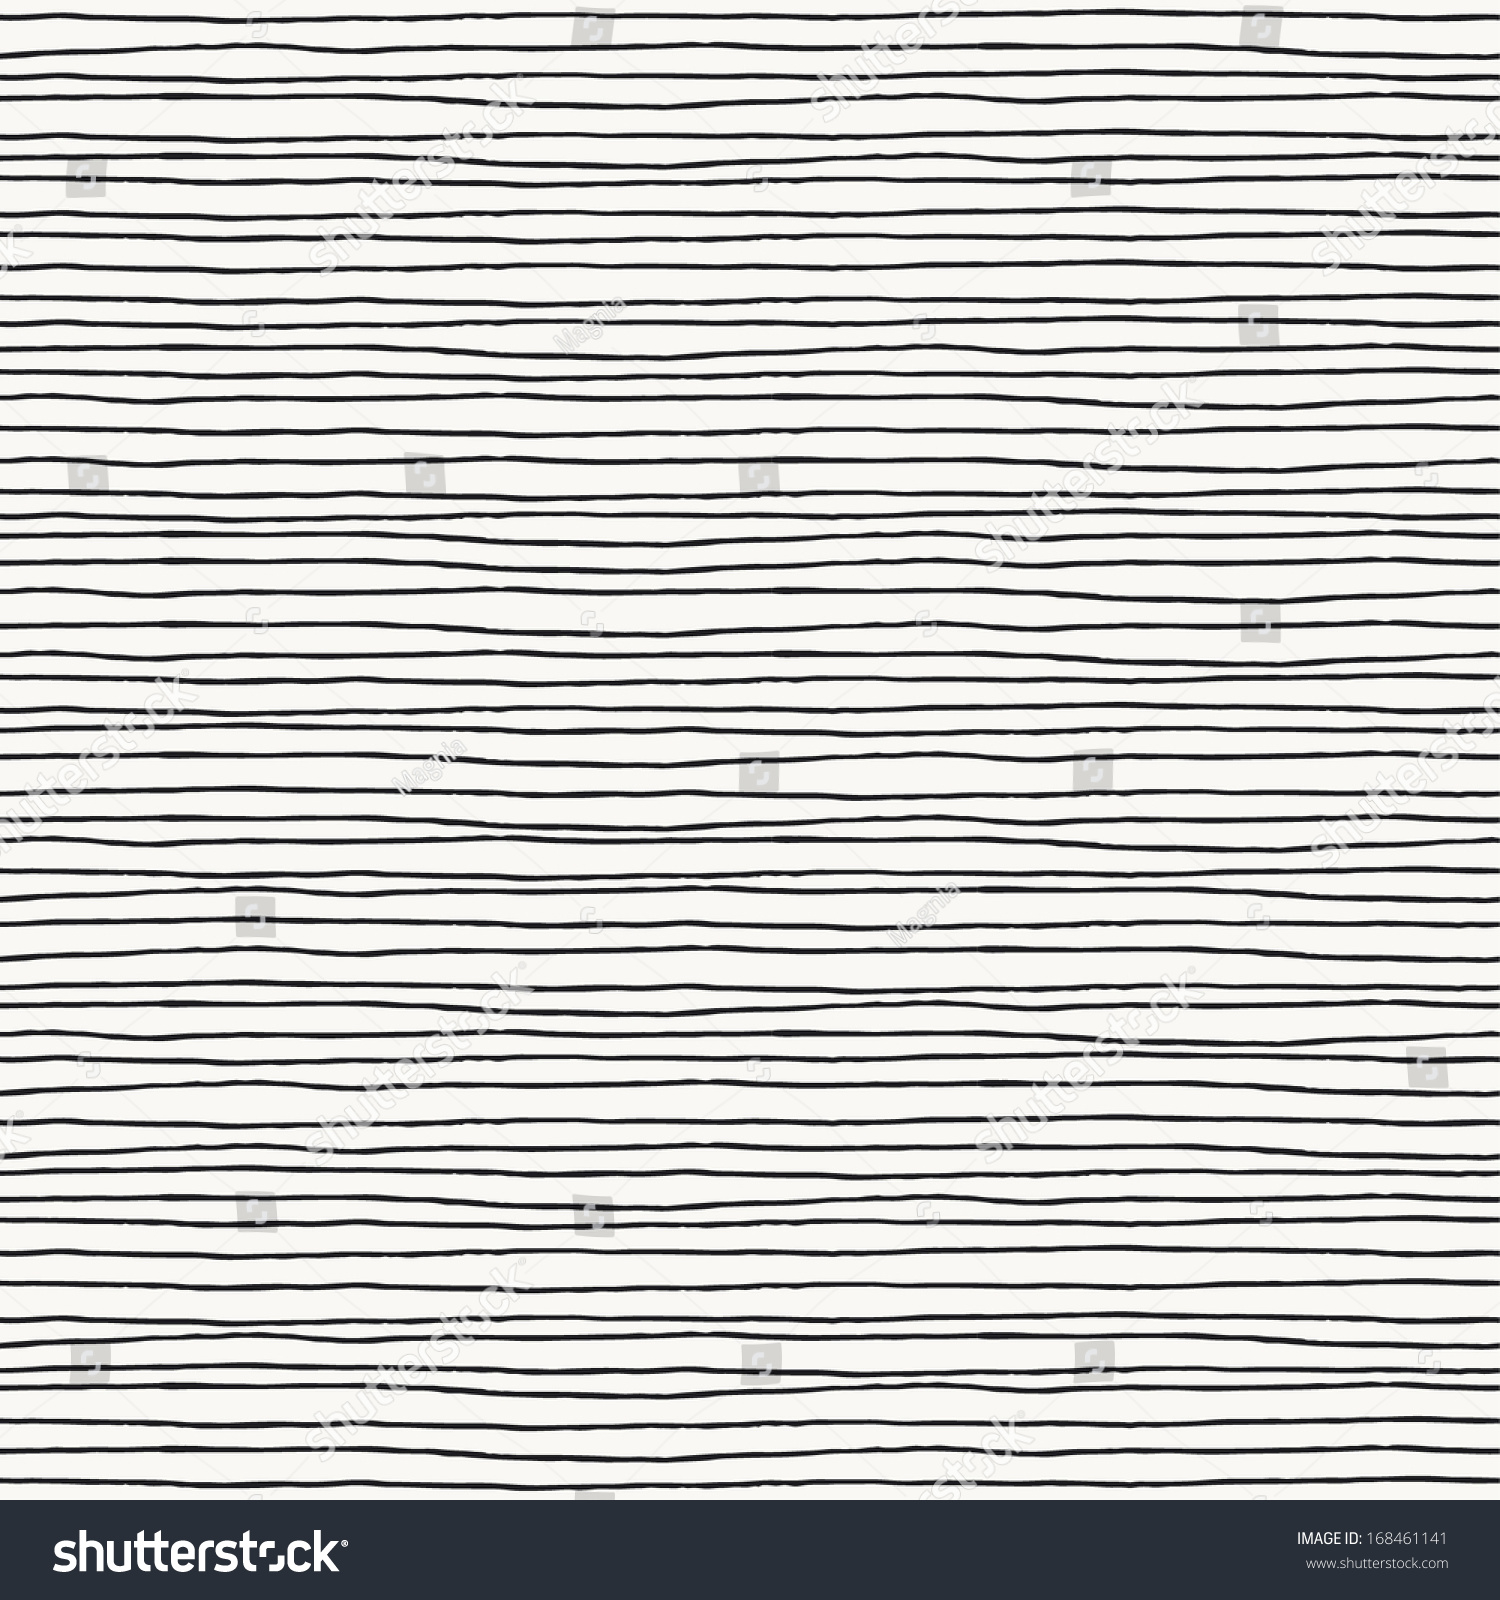 Line Texture Seamless : Seamless pattern hand drawn lines vector stock